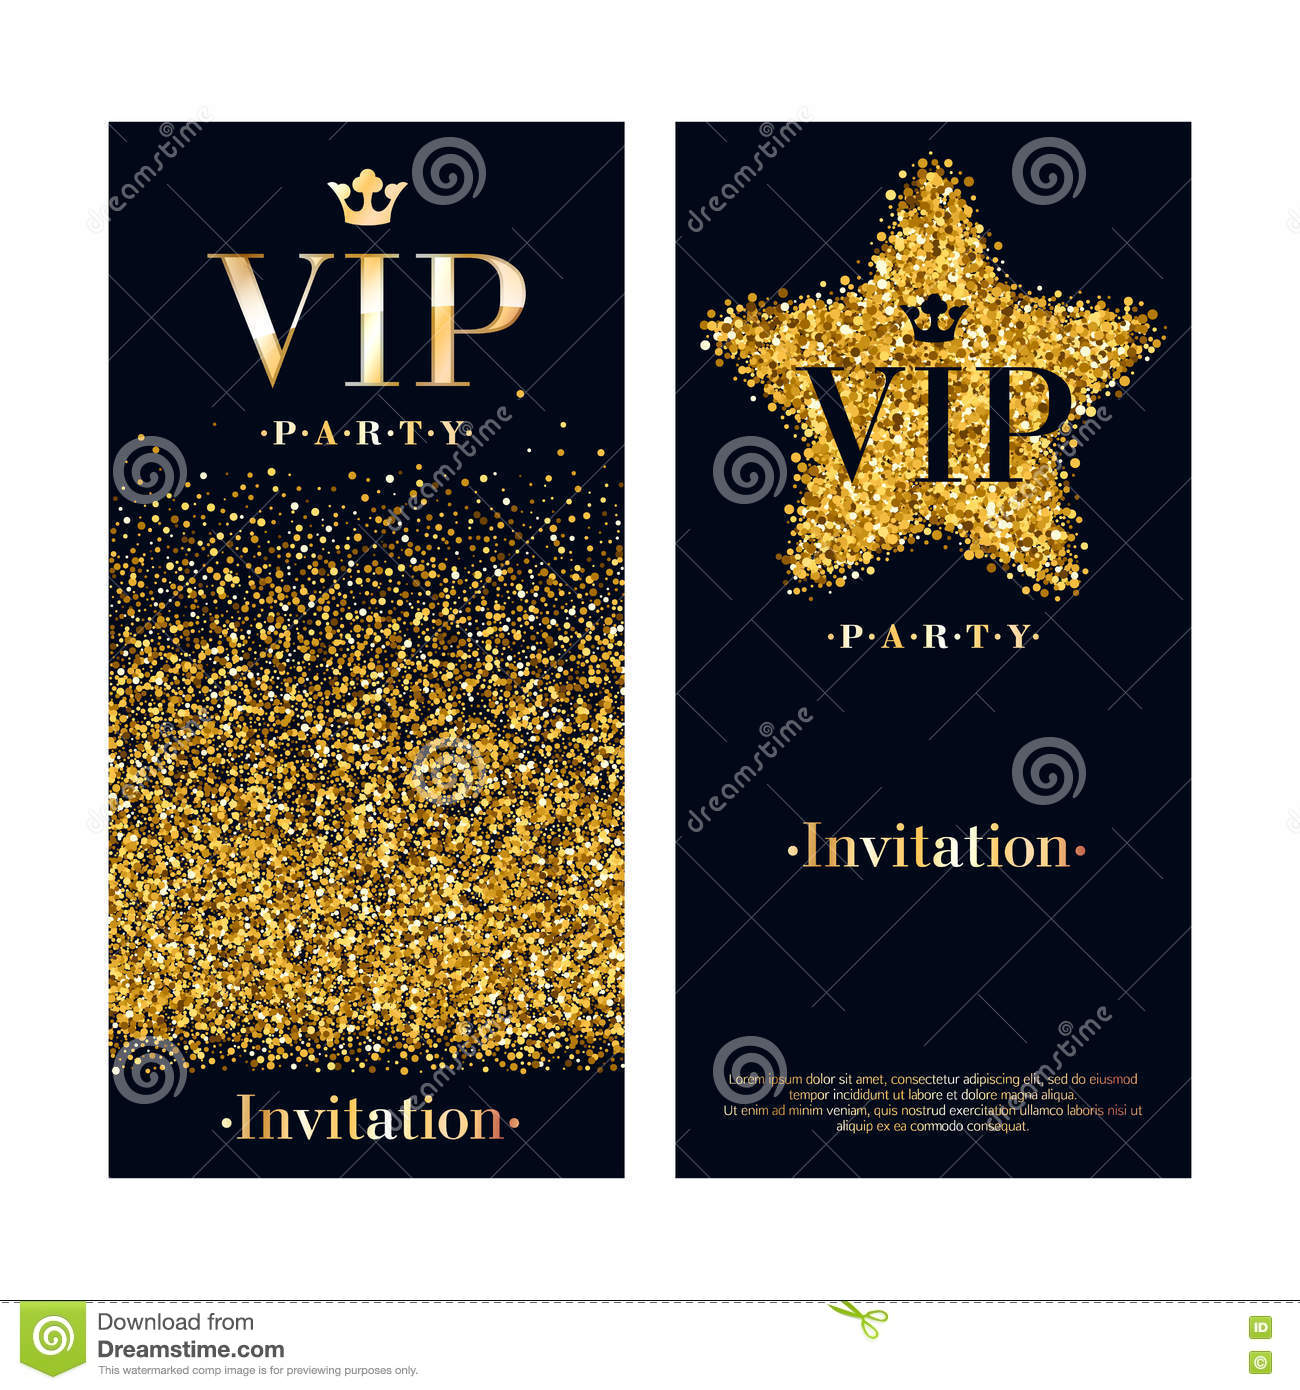 vip invitation card premium design template stock vector